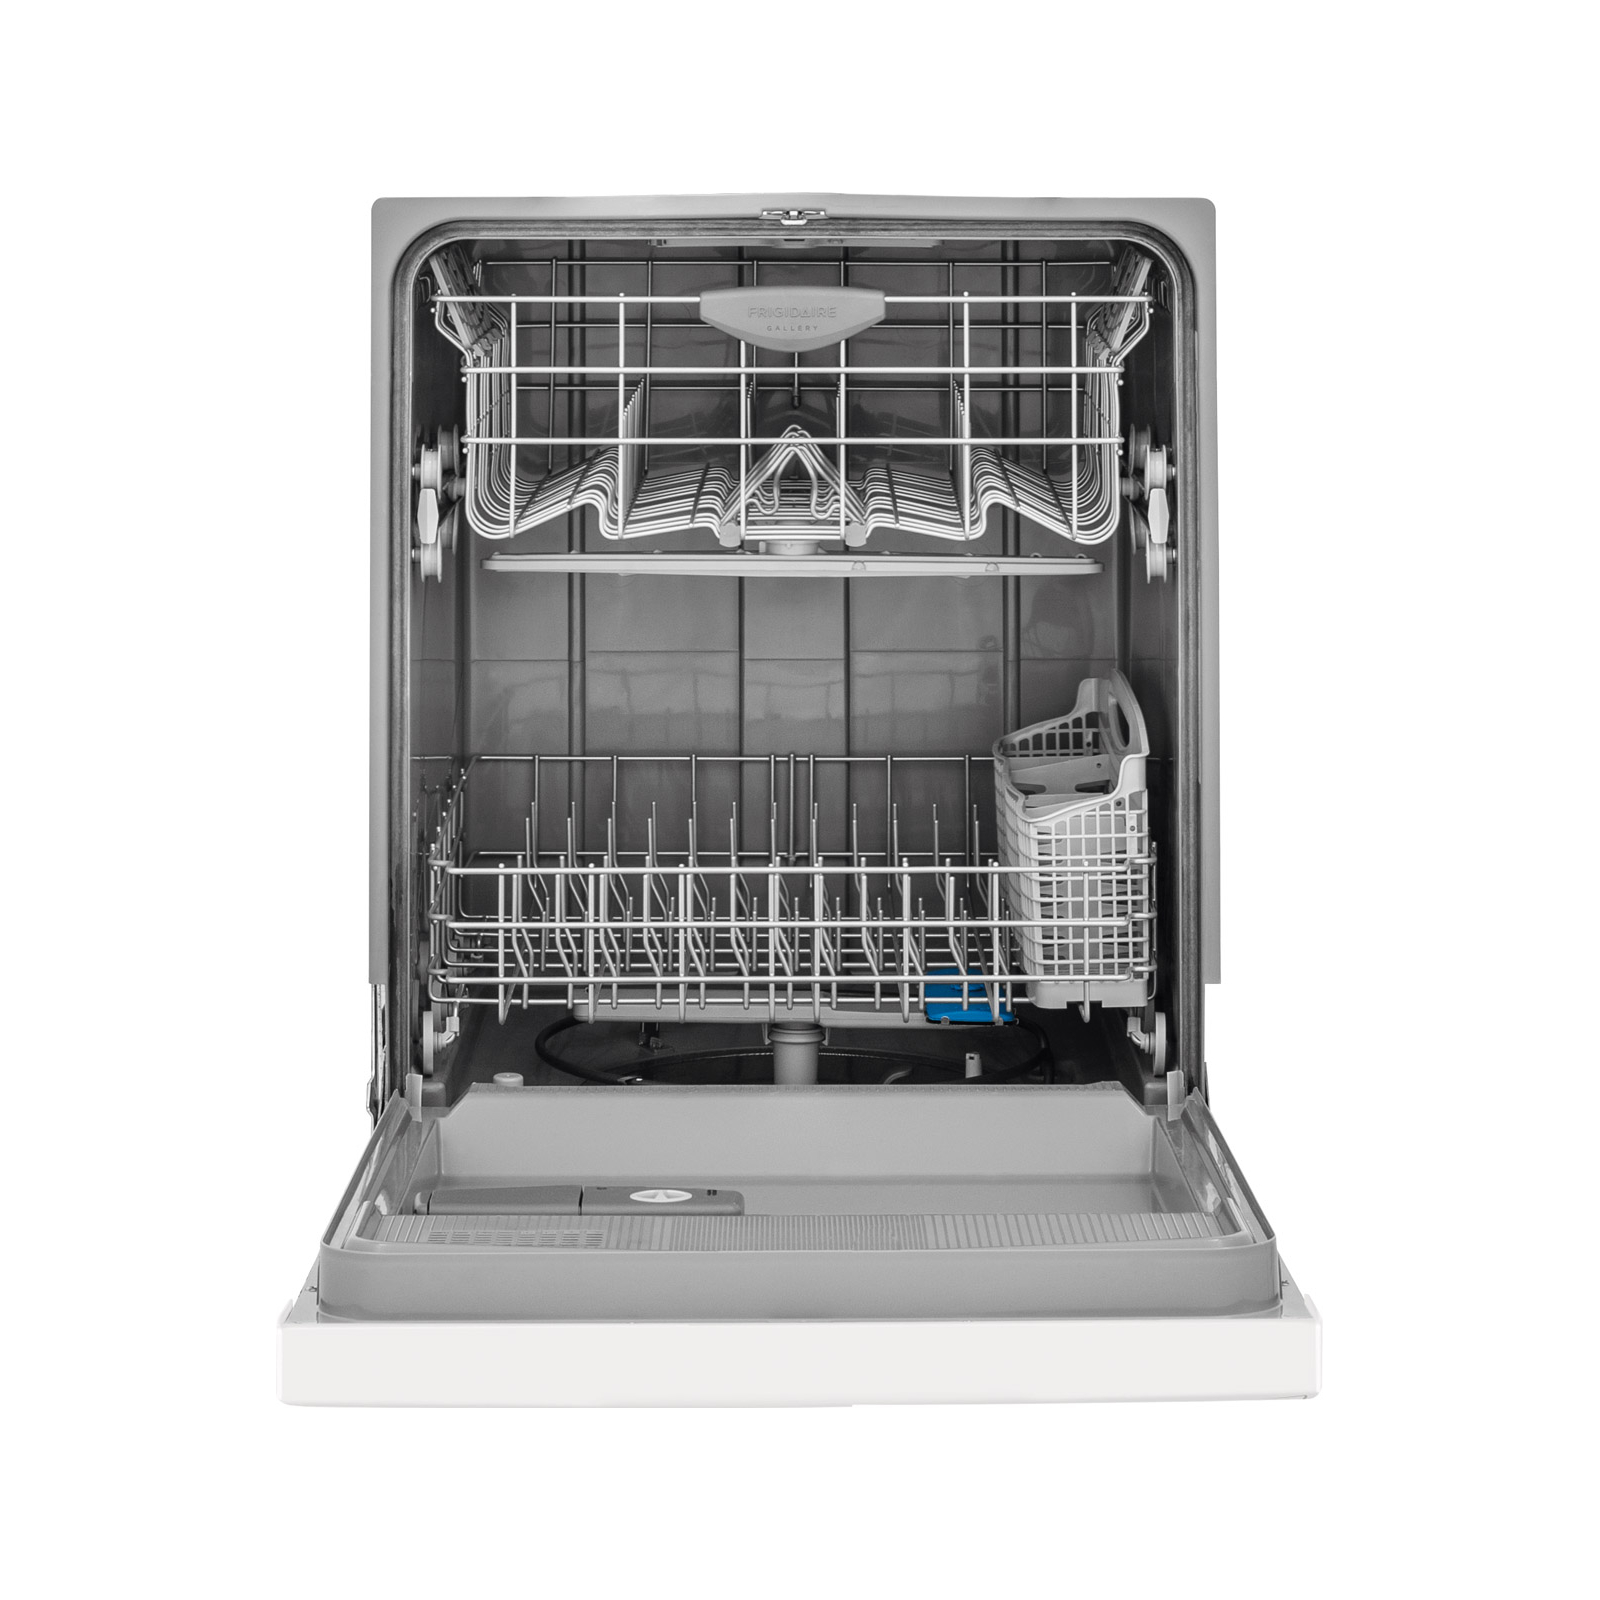 "Frigidaire Gallery FGBD2438PW Gallery 24"" Built-In Dishwasher w/ BladeSpray™ Wash System - White"